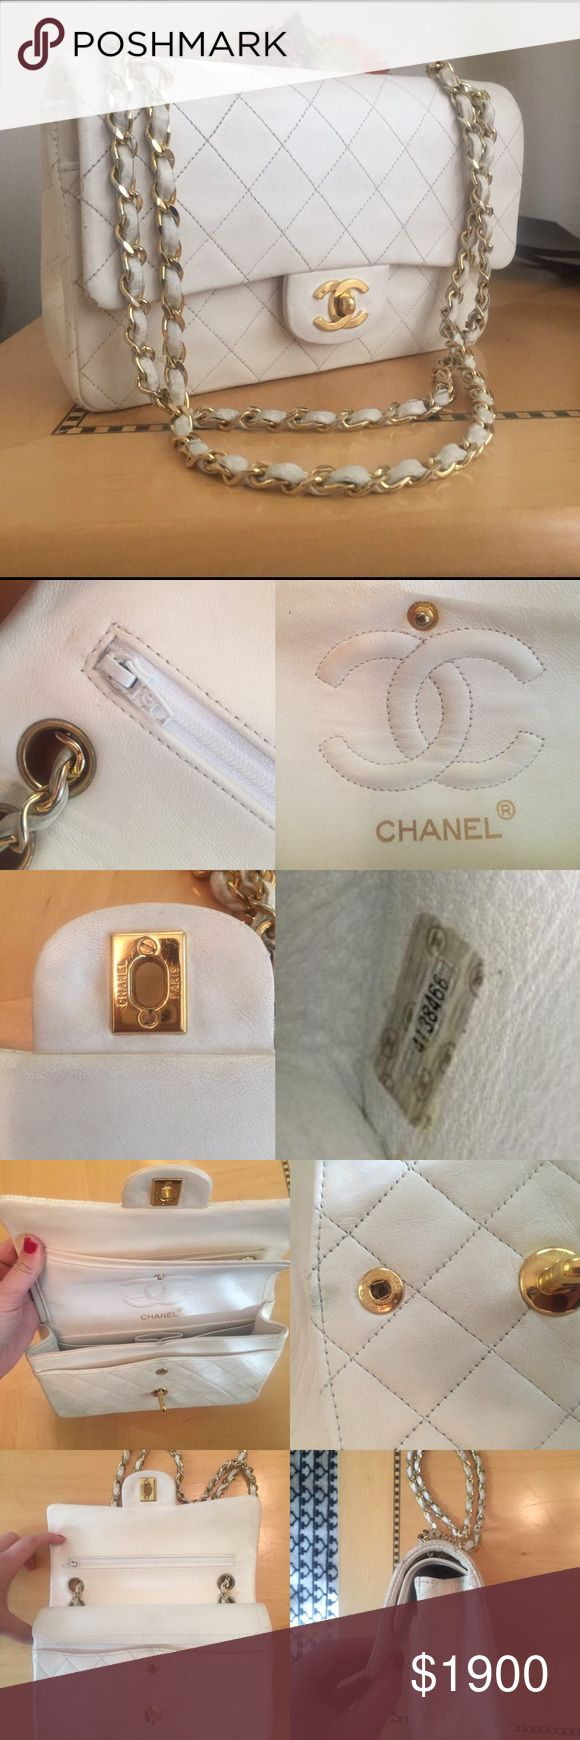 Auth Chanel double flap bag purse Beautiful white double flap Chanel purse. In good pre owned condition with some signs of wear on the leather, particularly the back (see photos). Inside is clean. Serial number in tact. Thanks for looking! Happy to post more photos. CHANEL Bags Shoulder Bags